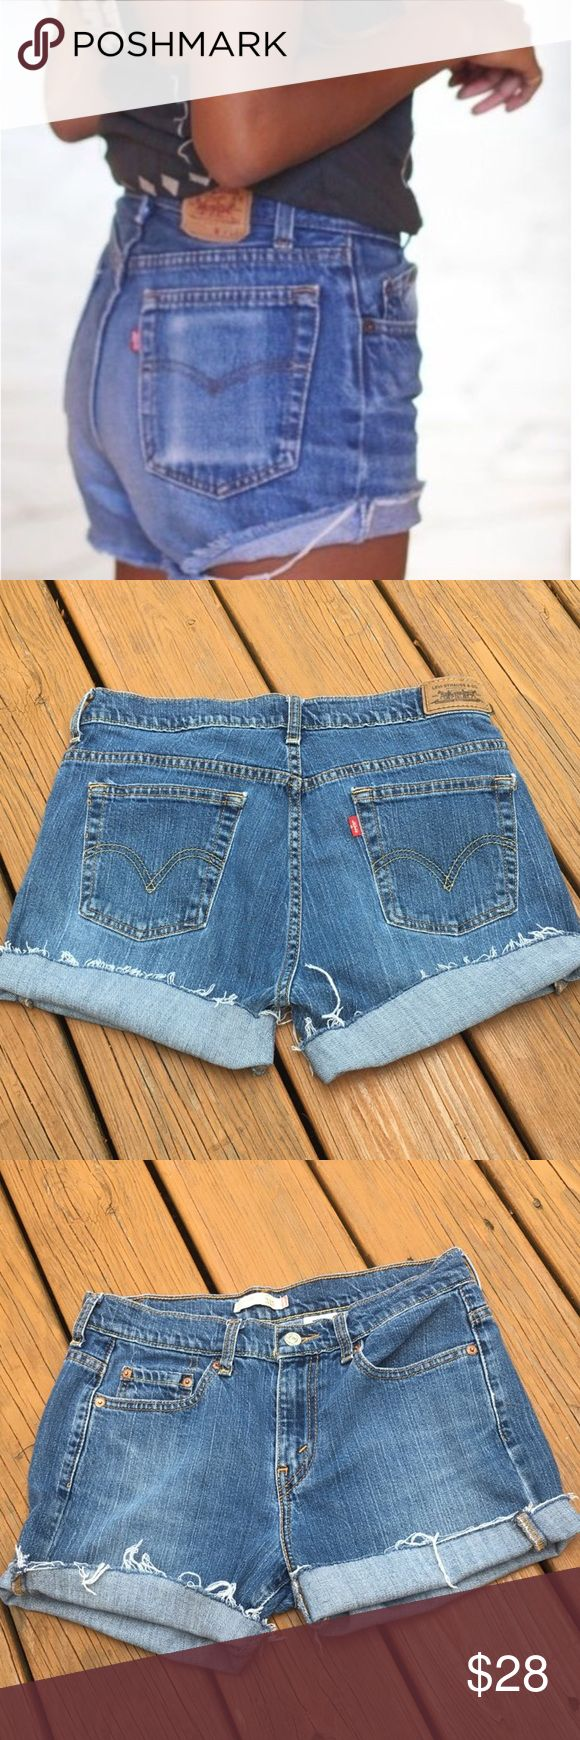 """High waisted Levi cutoffs Vintage Levi cutoffs. High waisted. Will add rips if requested. Measurements: waist 32"""" hips 40"""". These stretch! Levi's Shorts Jean Shorts"""